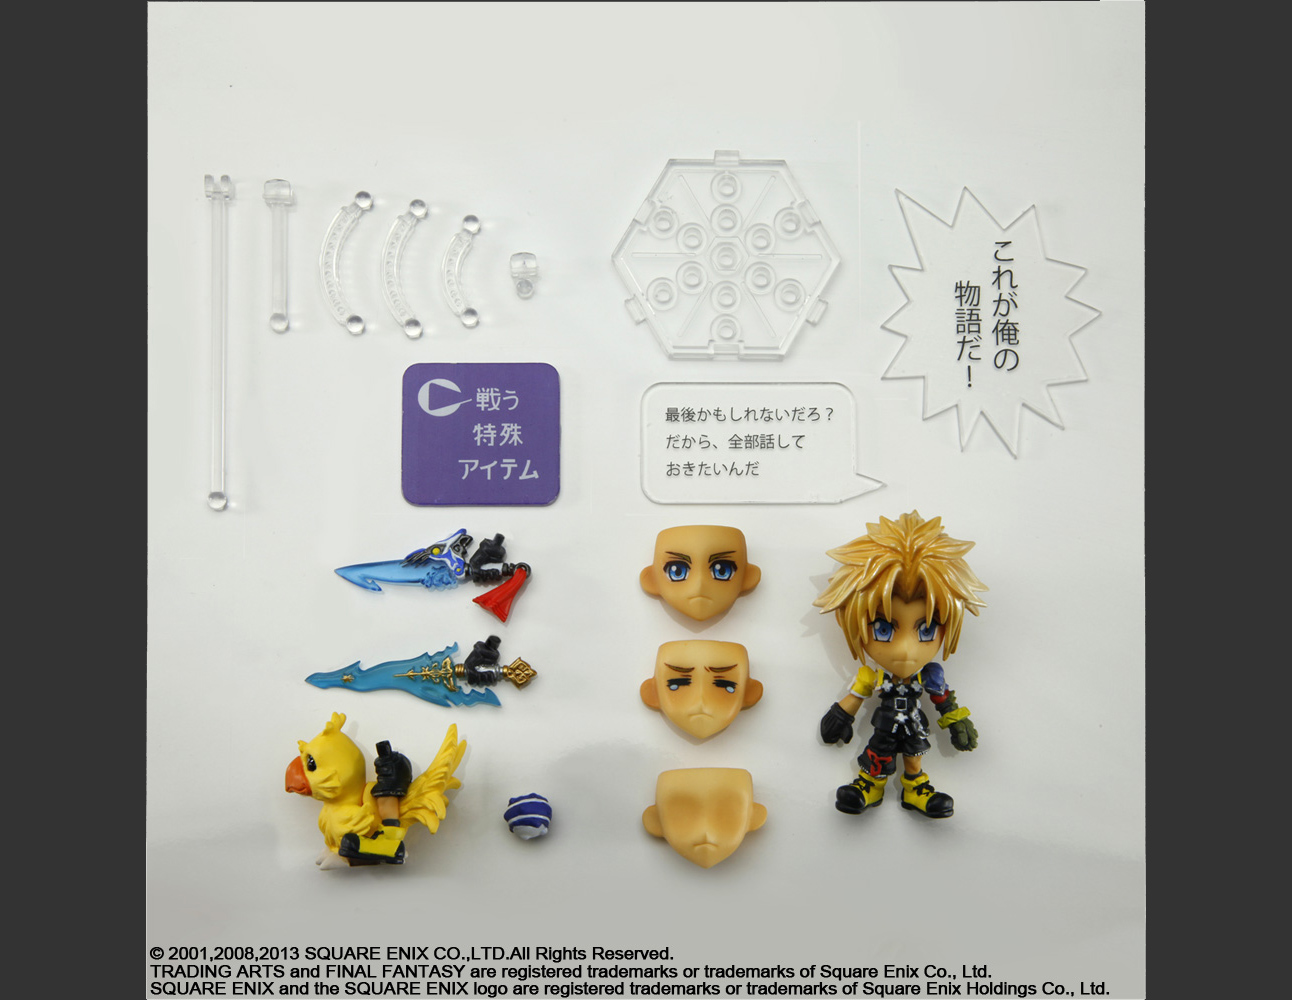 FINAL FANTASY TRADING ARTS KAI mini TIDUS